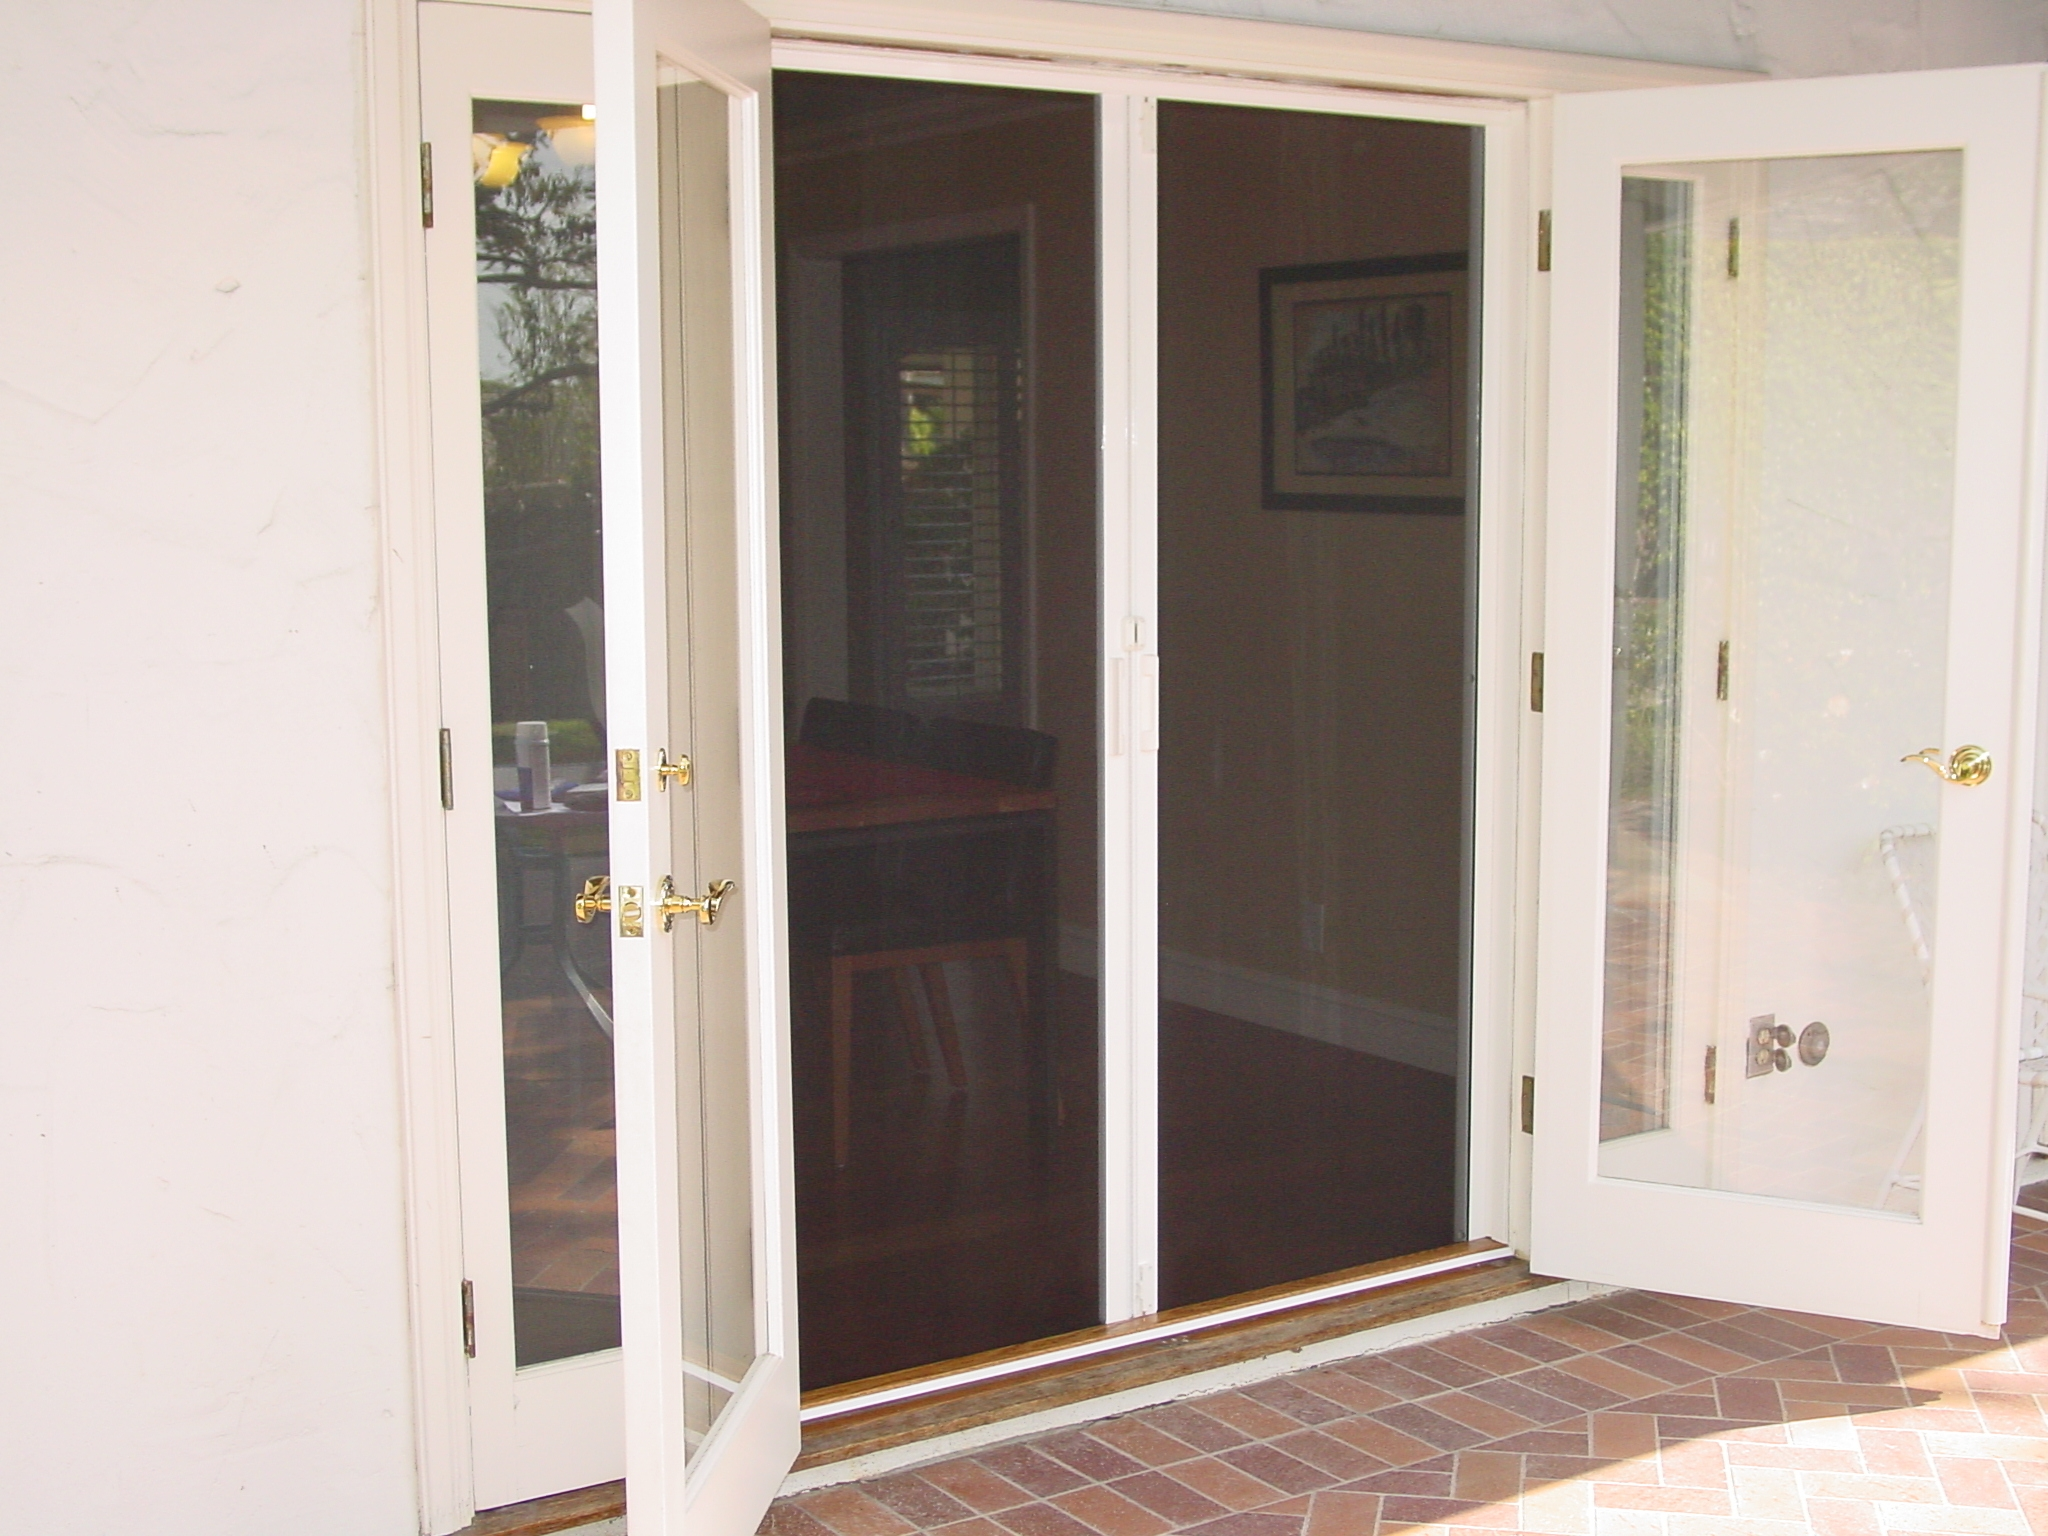 1536 #845D47 Double French Doors With Screens Interior & Exterior Doors save image Exterior Doors With Pet Door Built In 39172048